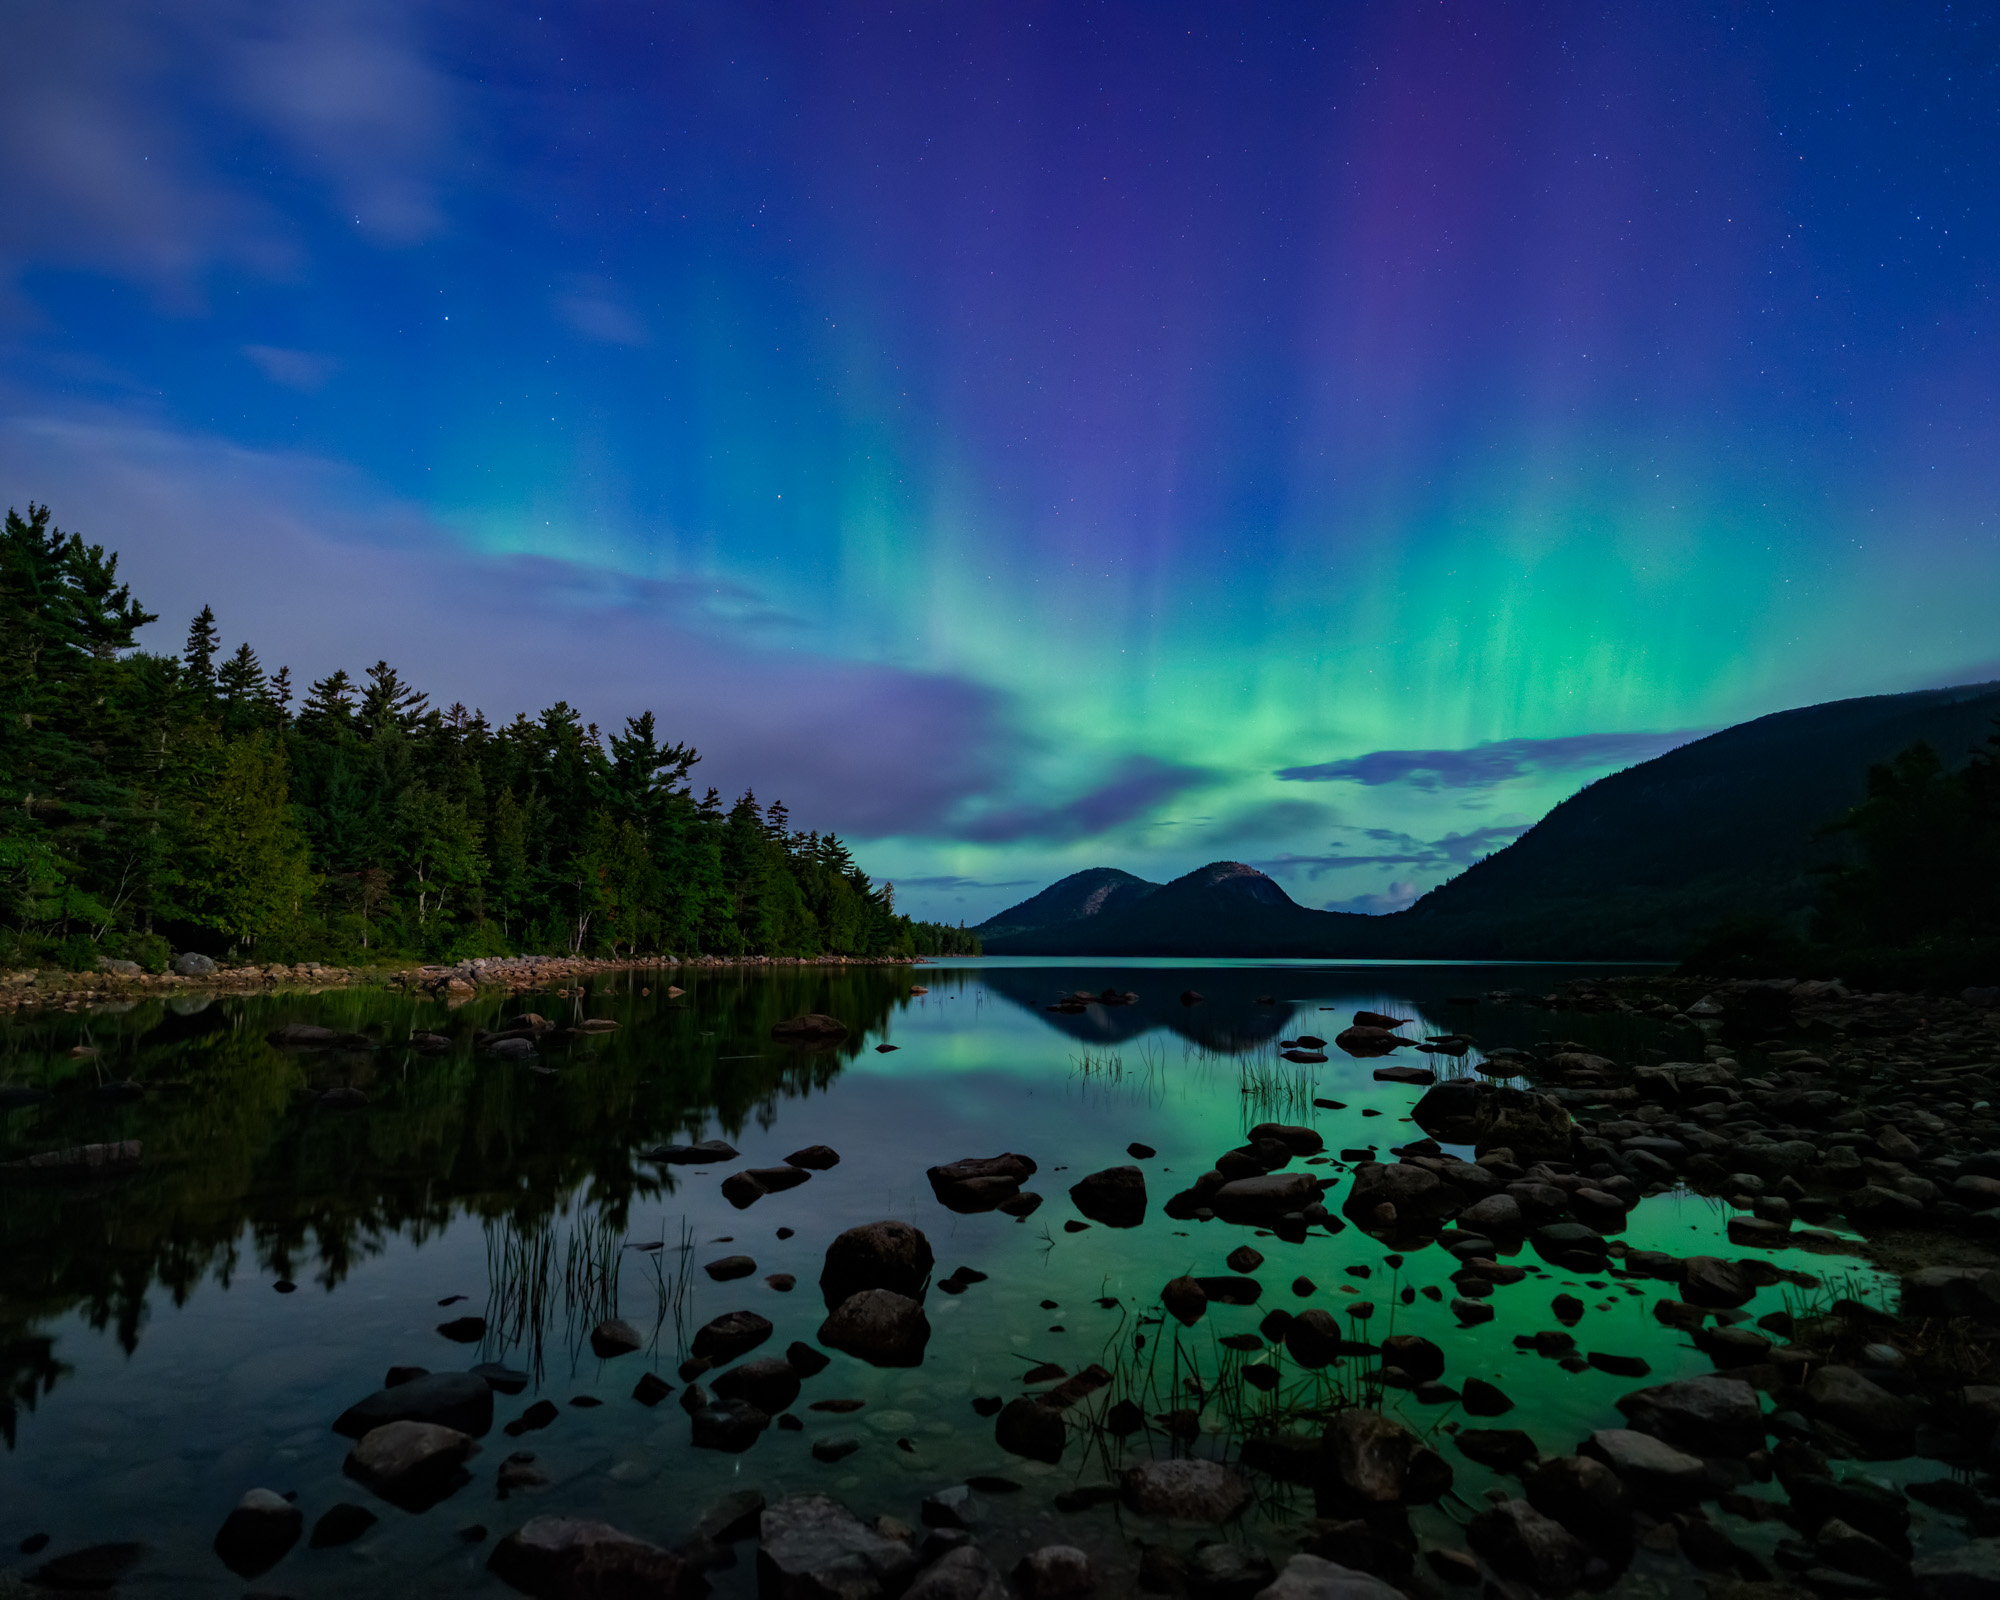 Moonlit Aurora, Jordan Pond, Acadia National Park, Maine